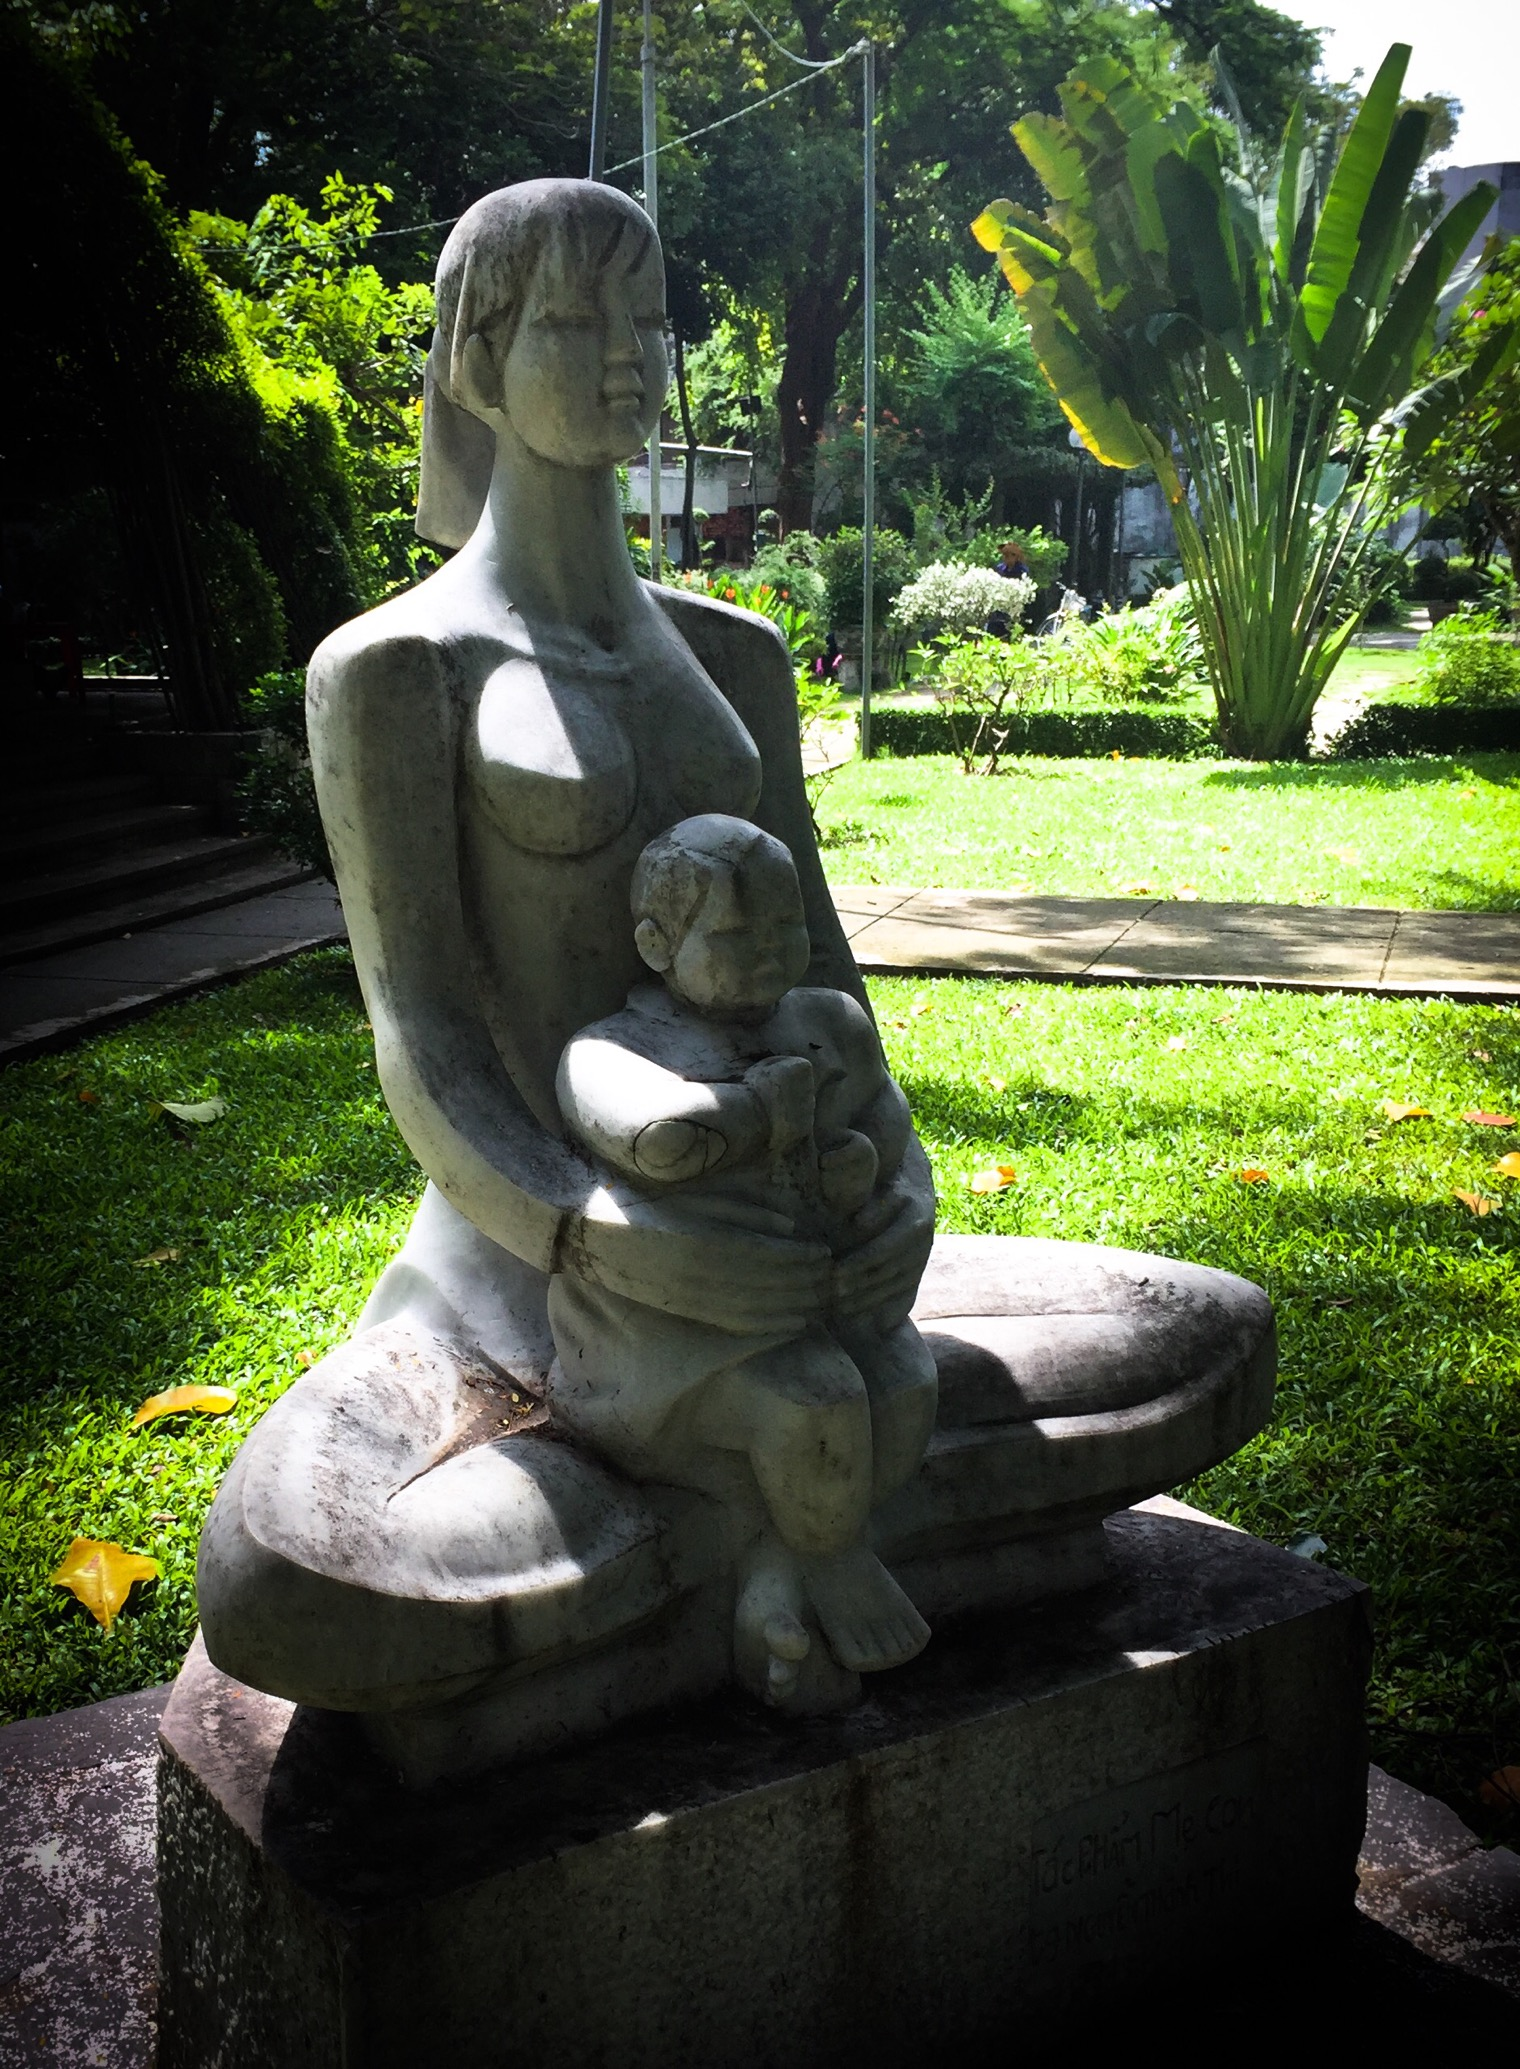 'Mother & Child' © Naida Ginnane 2017 iPhone 6s.A stone sculpture in a Vietnamese park acts as a symbol of peace representing the ideas of love and family.